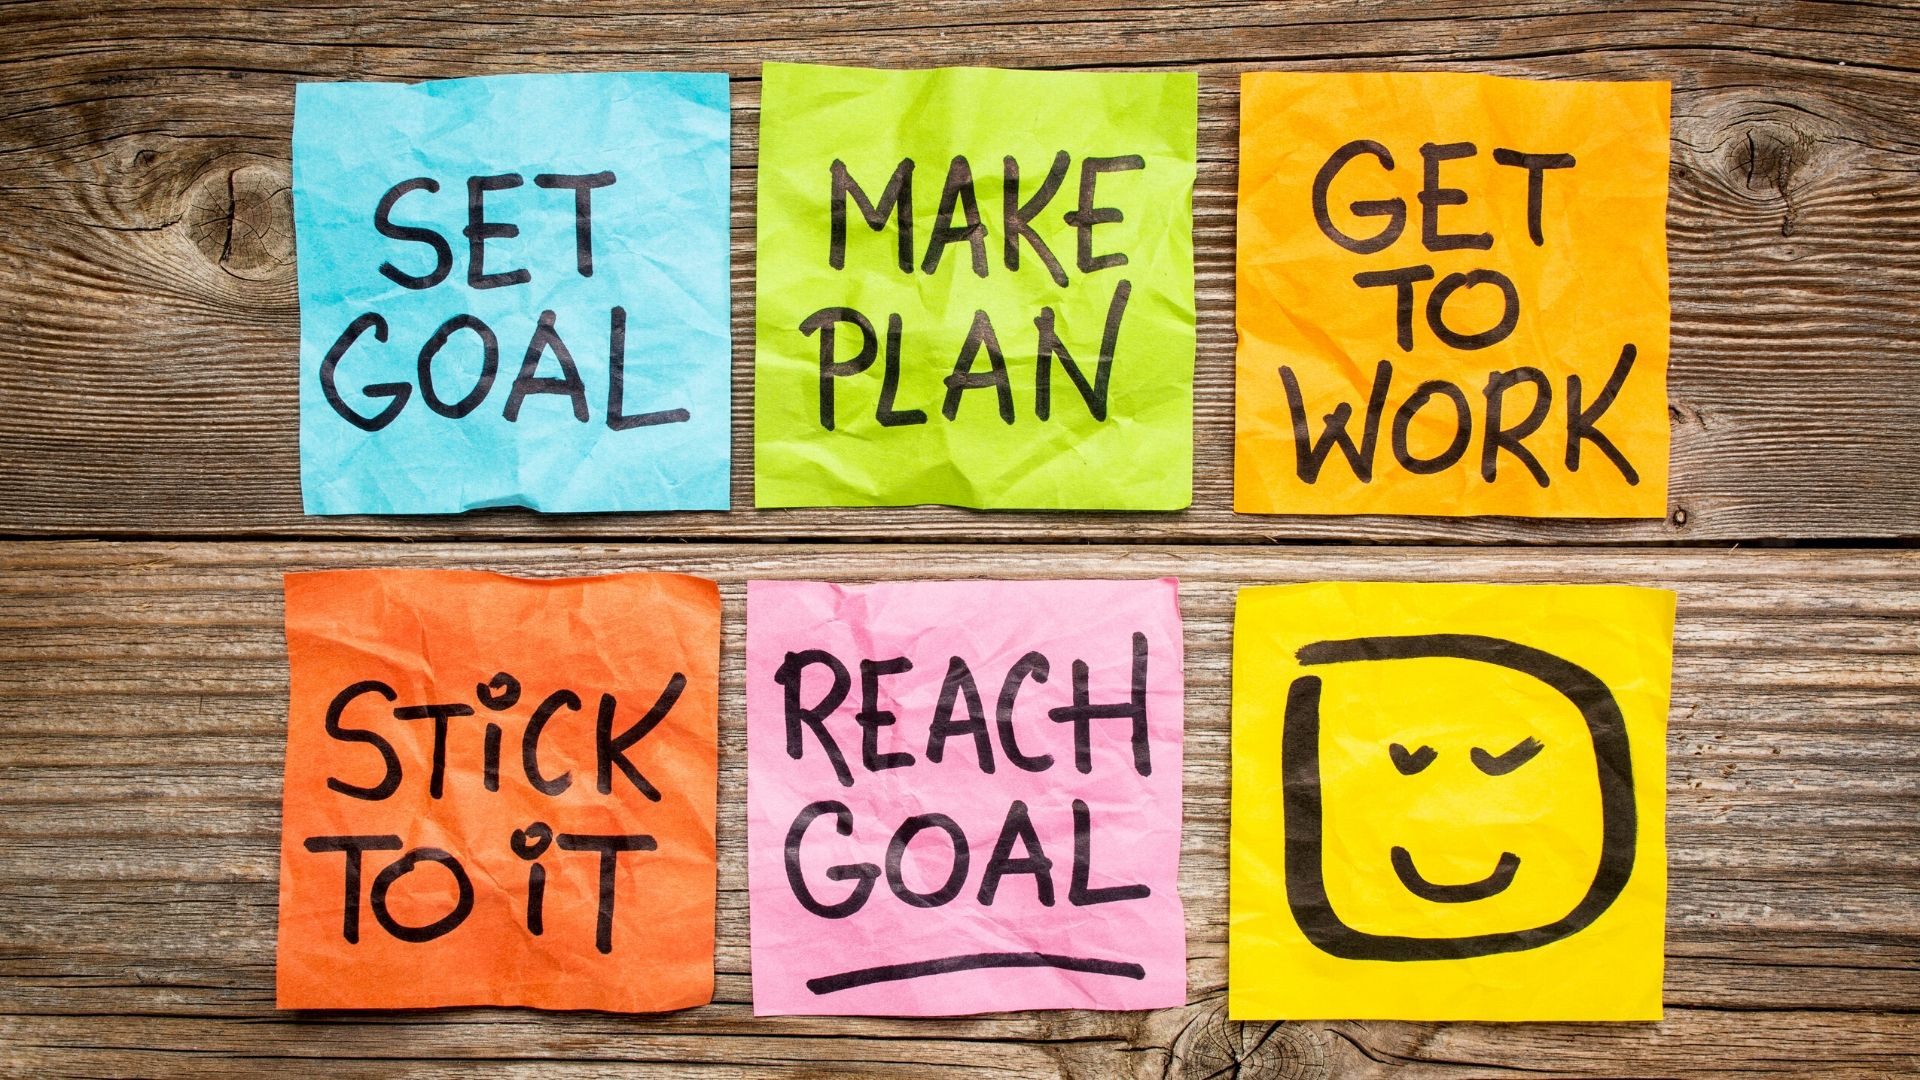 set of post-it notes that say: Set Goal, Make Plan, Get to work, Stick to it, Reach Goal.